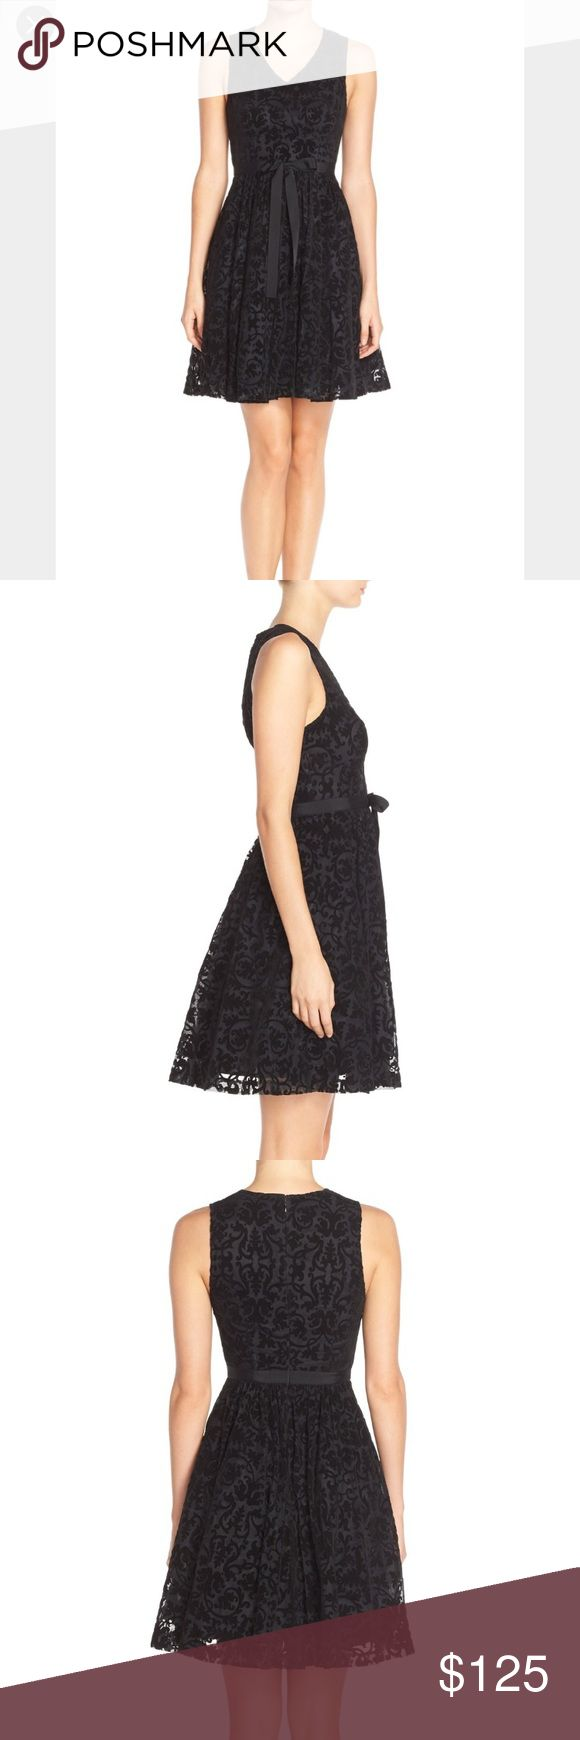 Tracy Reese Dress. Size 4. NWT. Tracy Reese Dress. Size 4. NWT. Plenty by Tracy Reese Dresses Mini